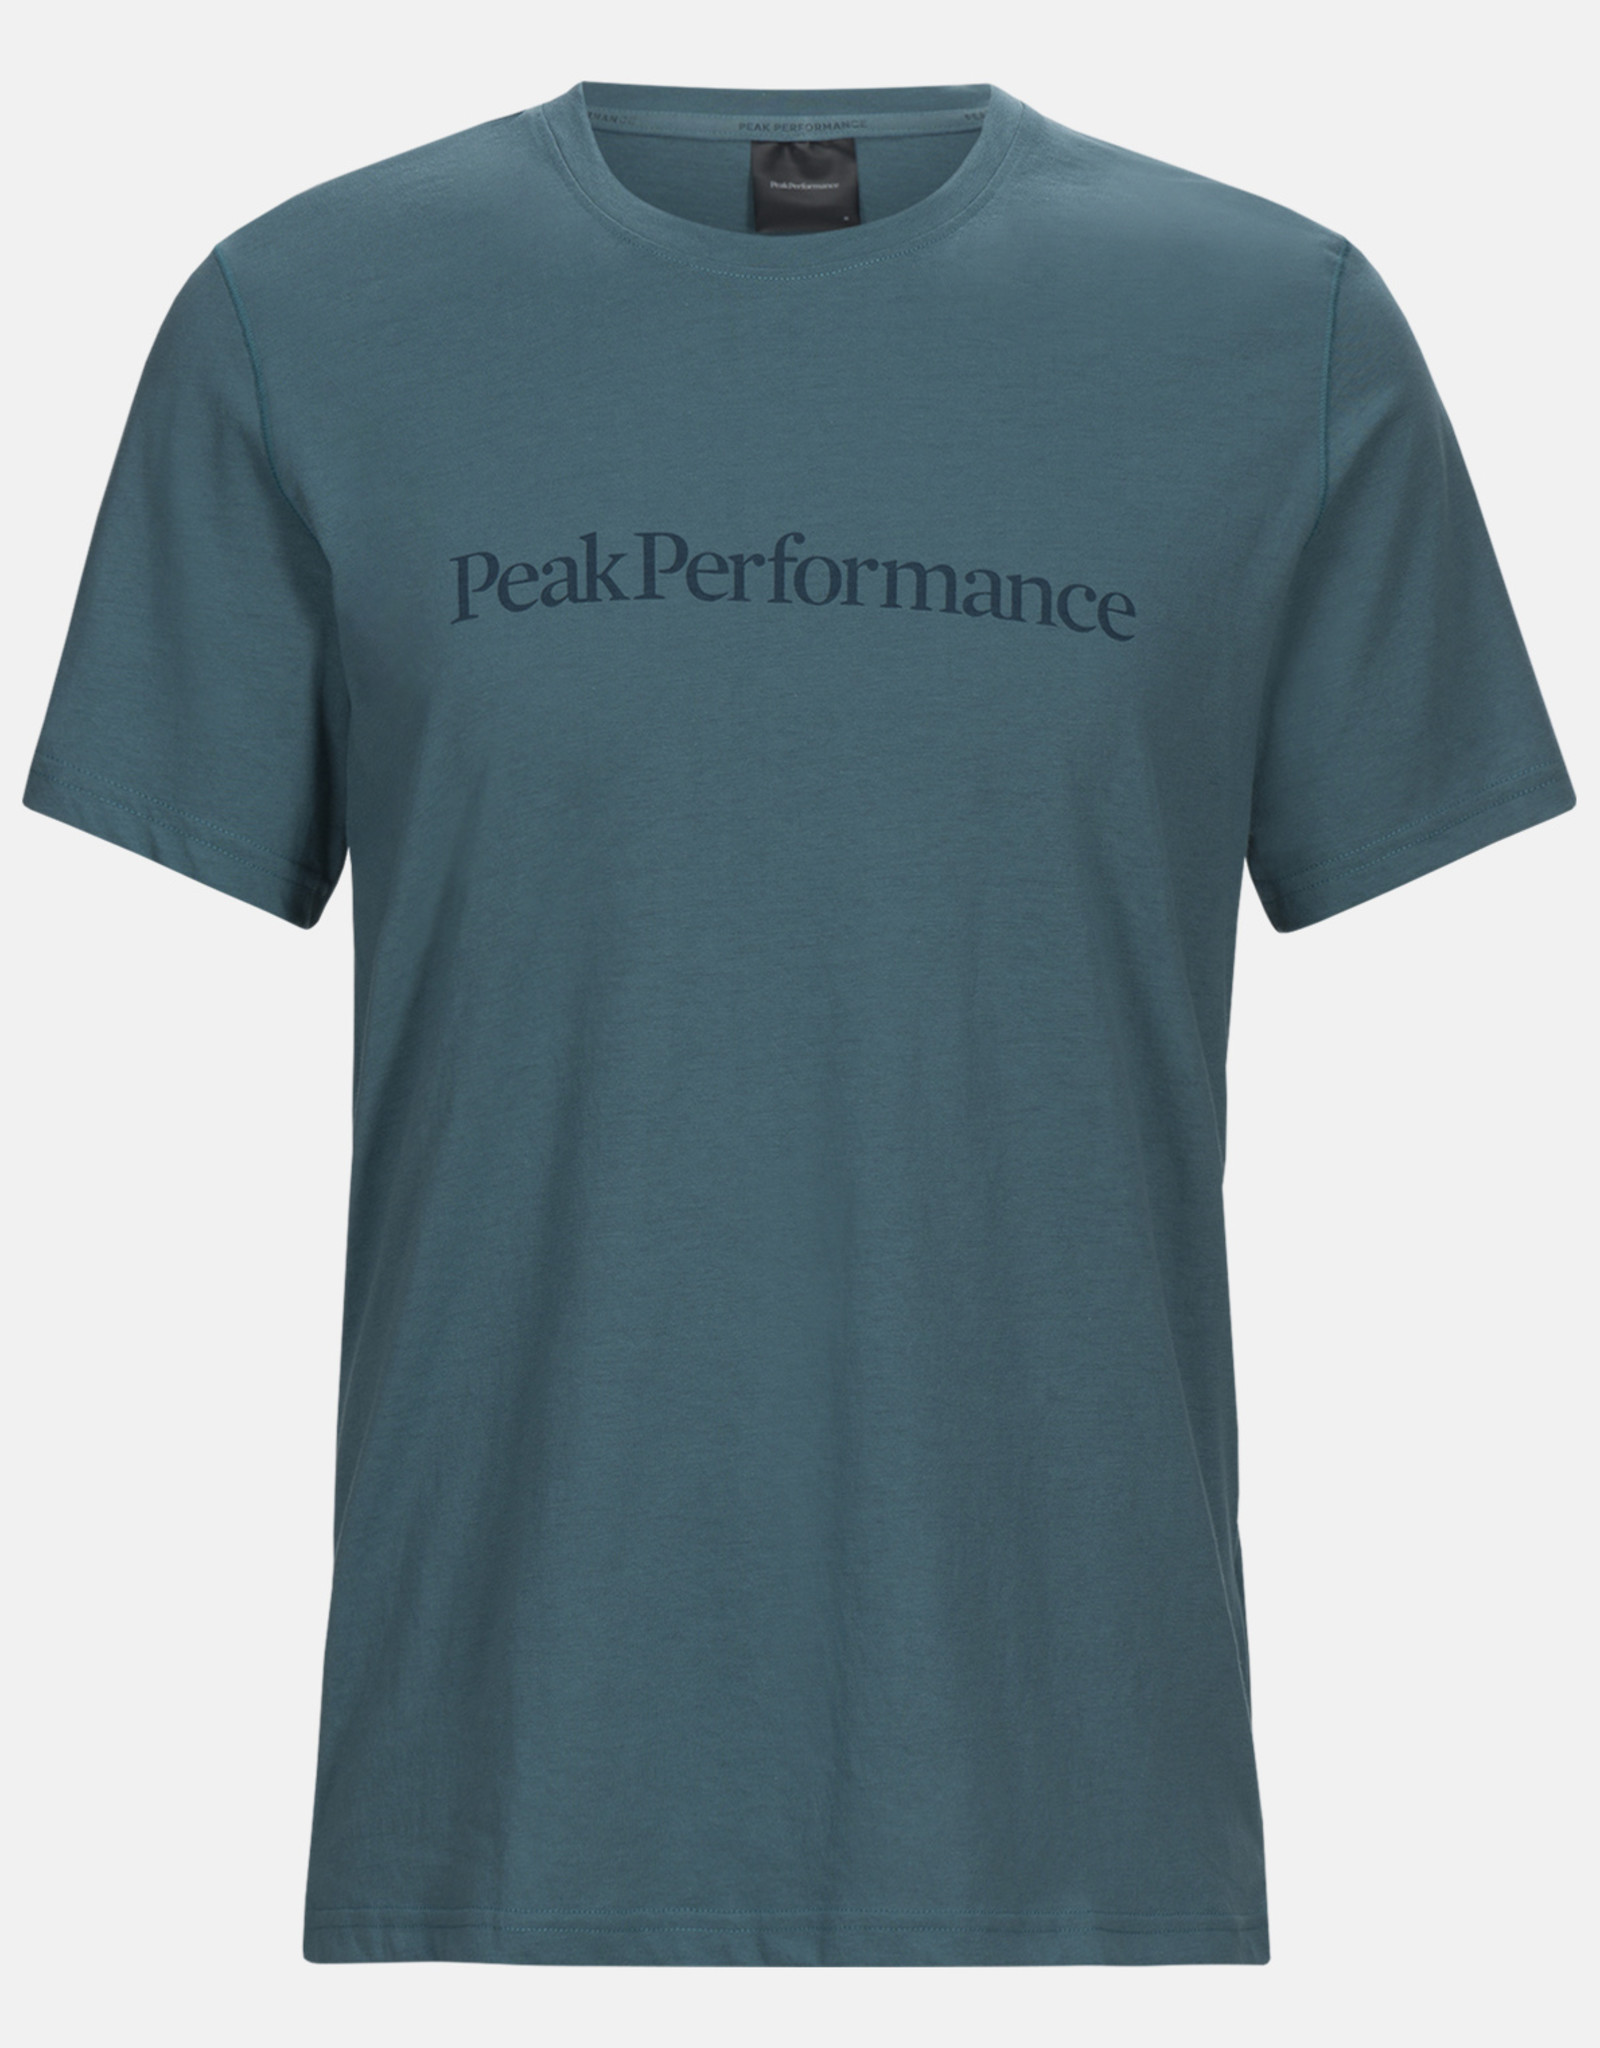 Peak Performance PEAK PERFORMANCE MEN'S TRACK TEE - S2019